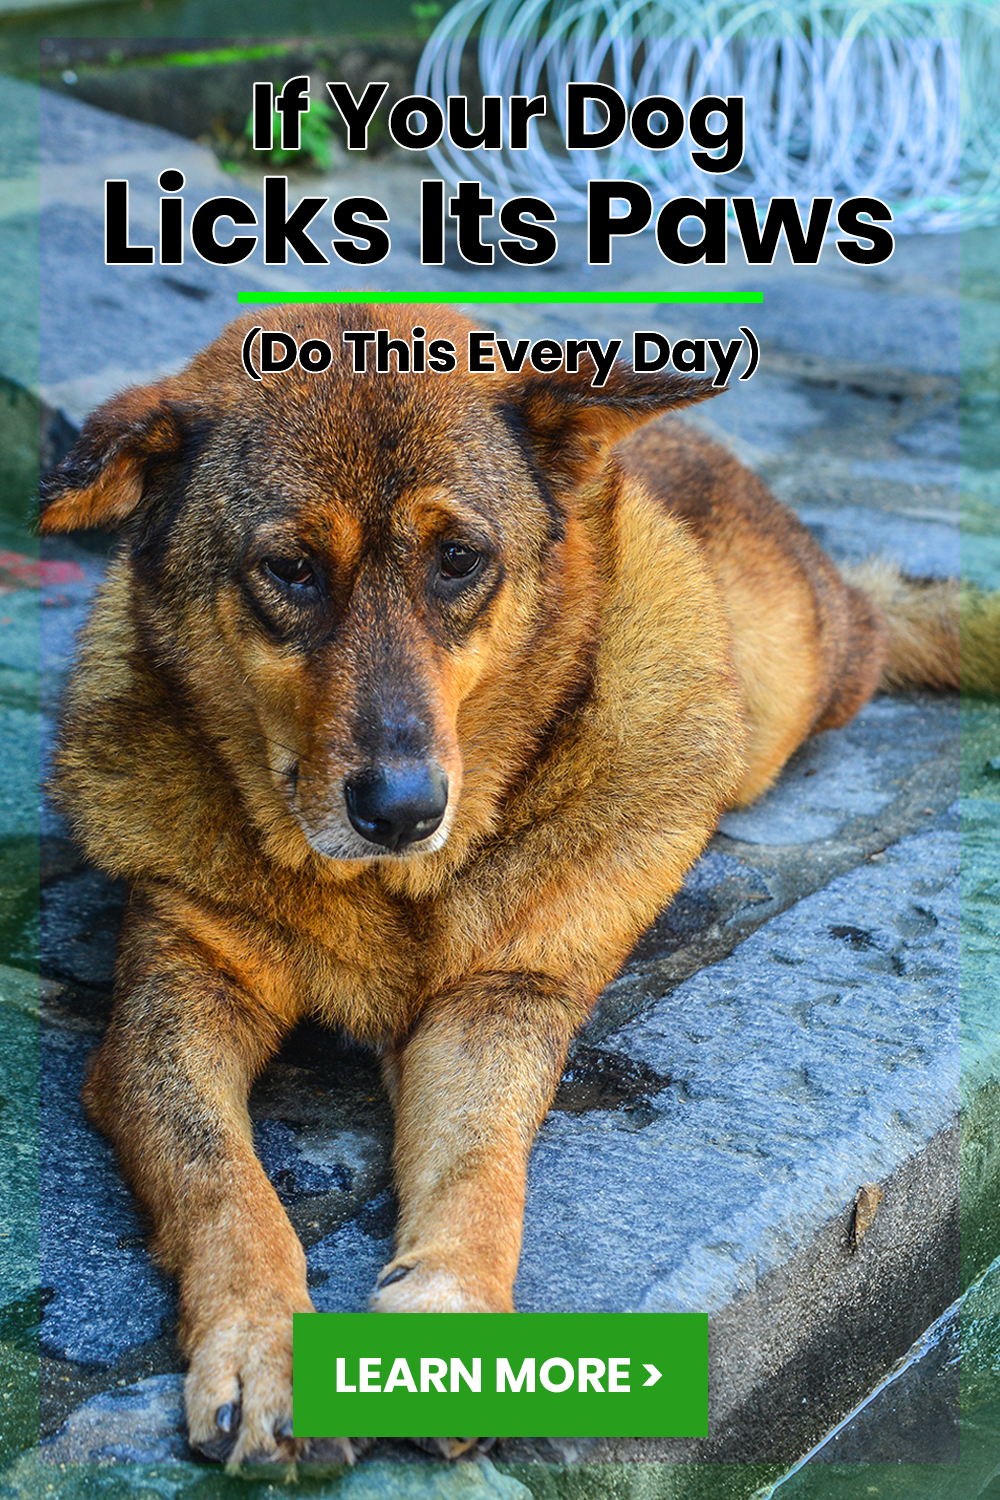 Learn more about this veterinarian's unique approach to